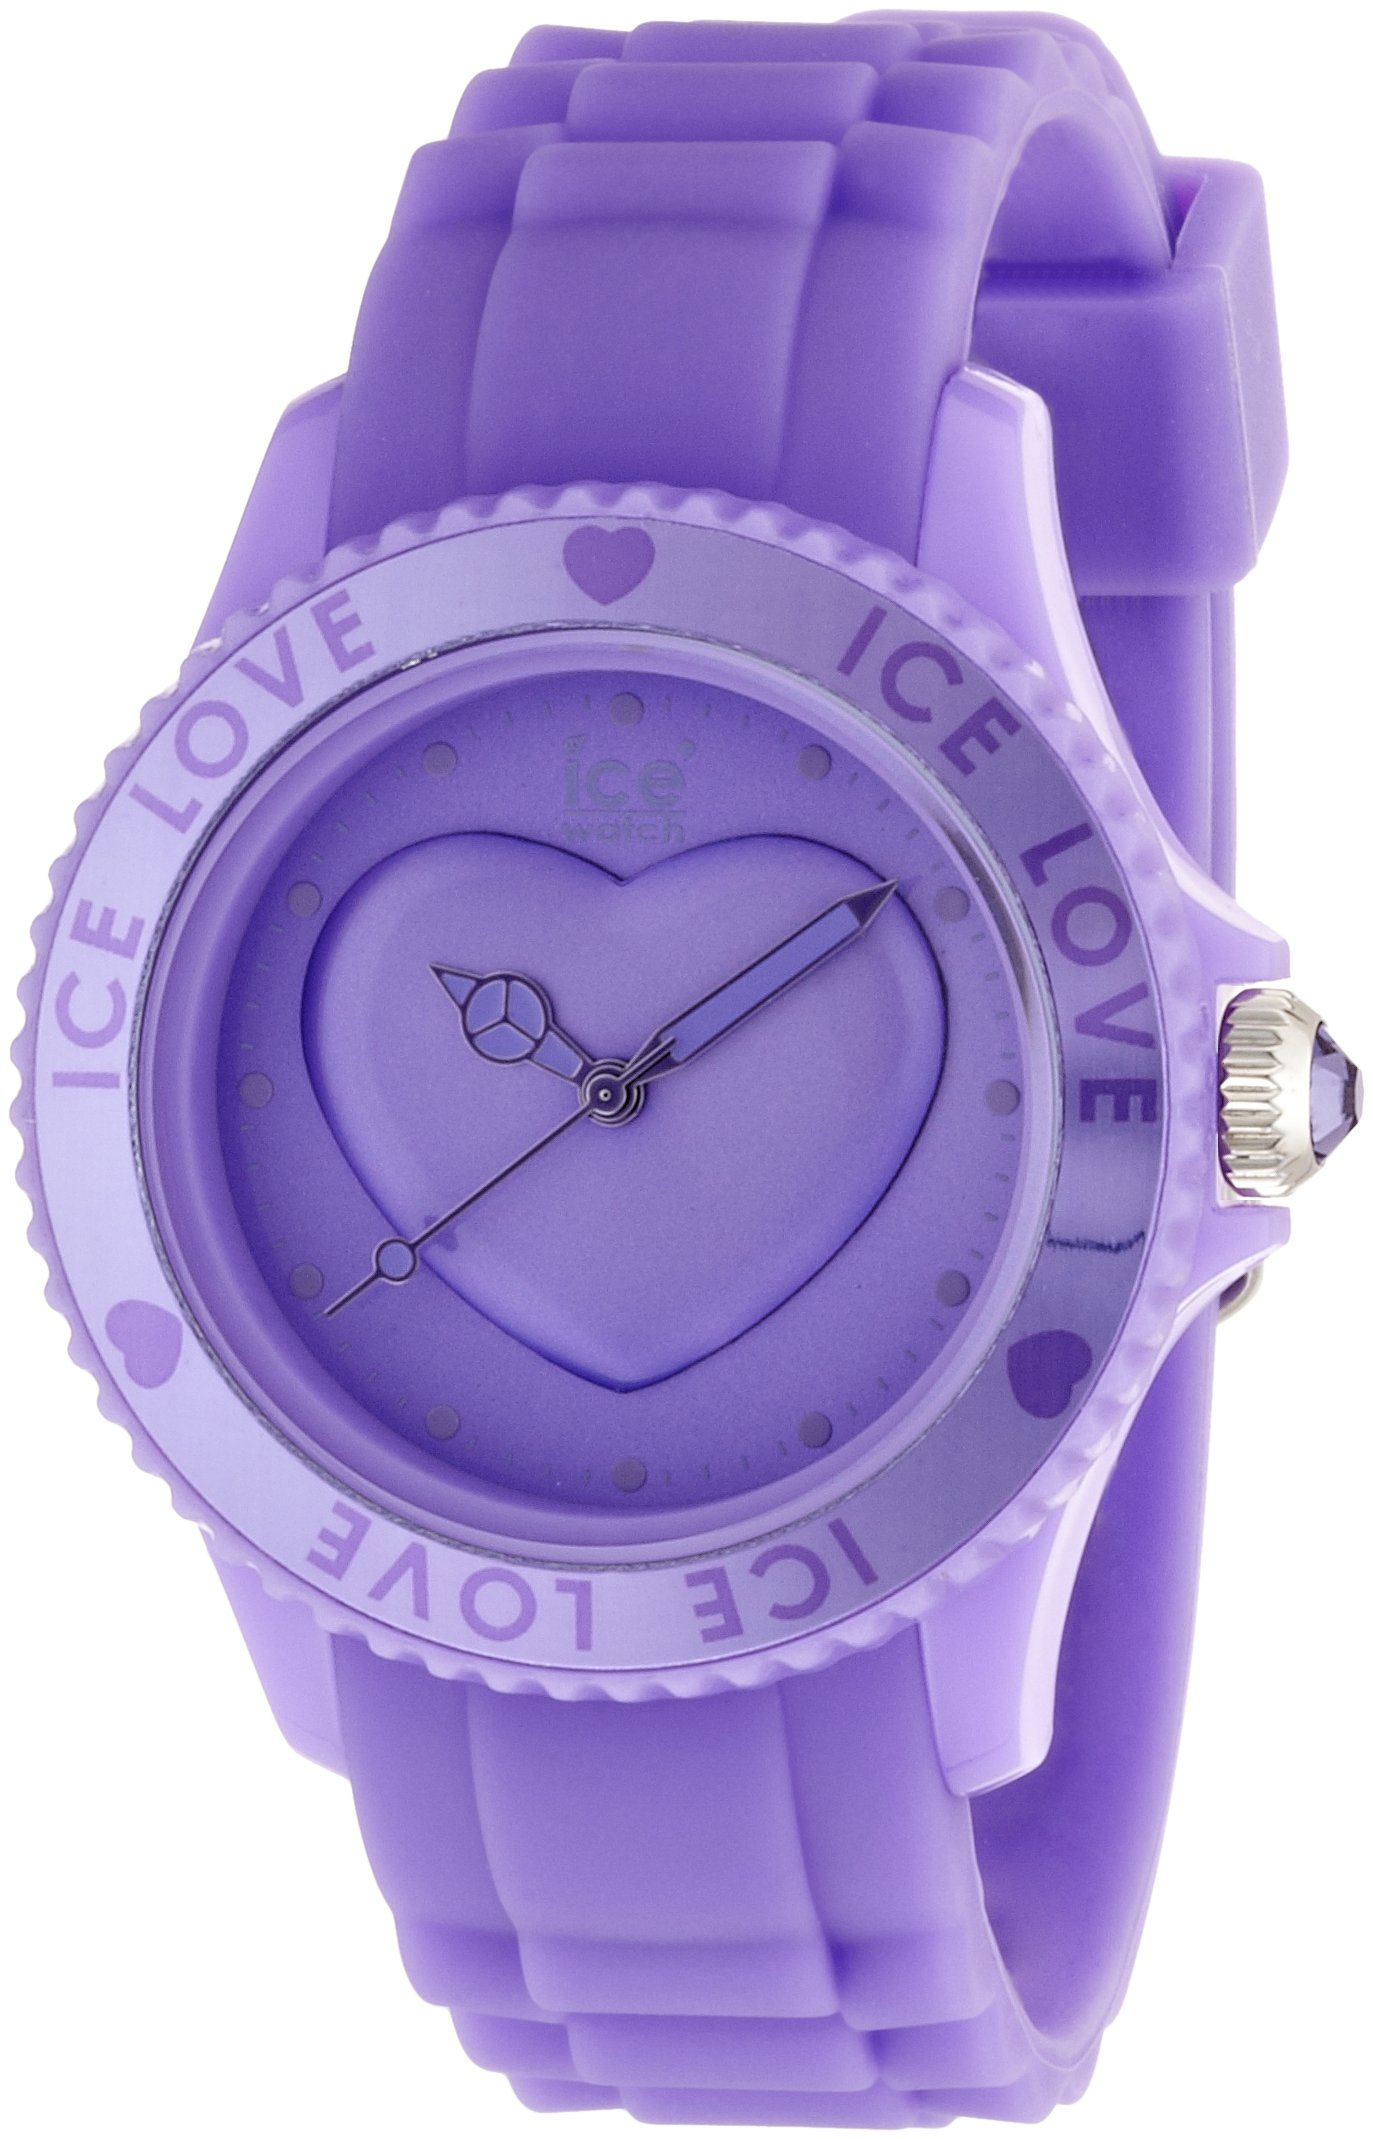 Ice-Watch Ice-Love Lavender Dial Unisex watch #LO.LR.U.S.11